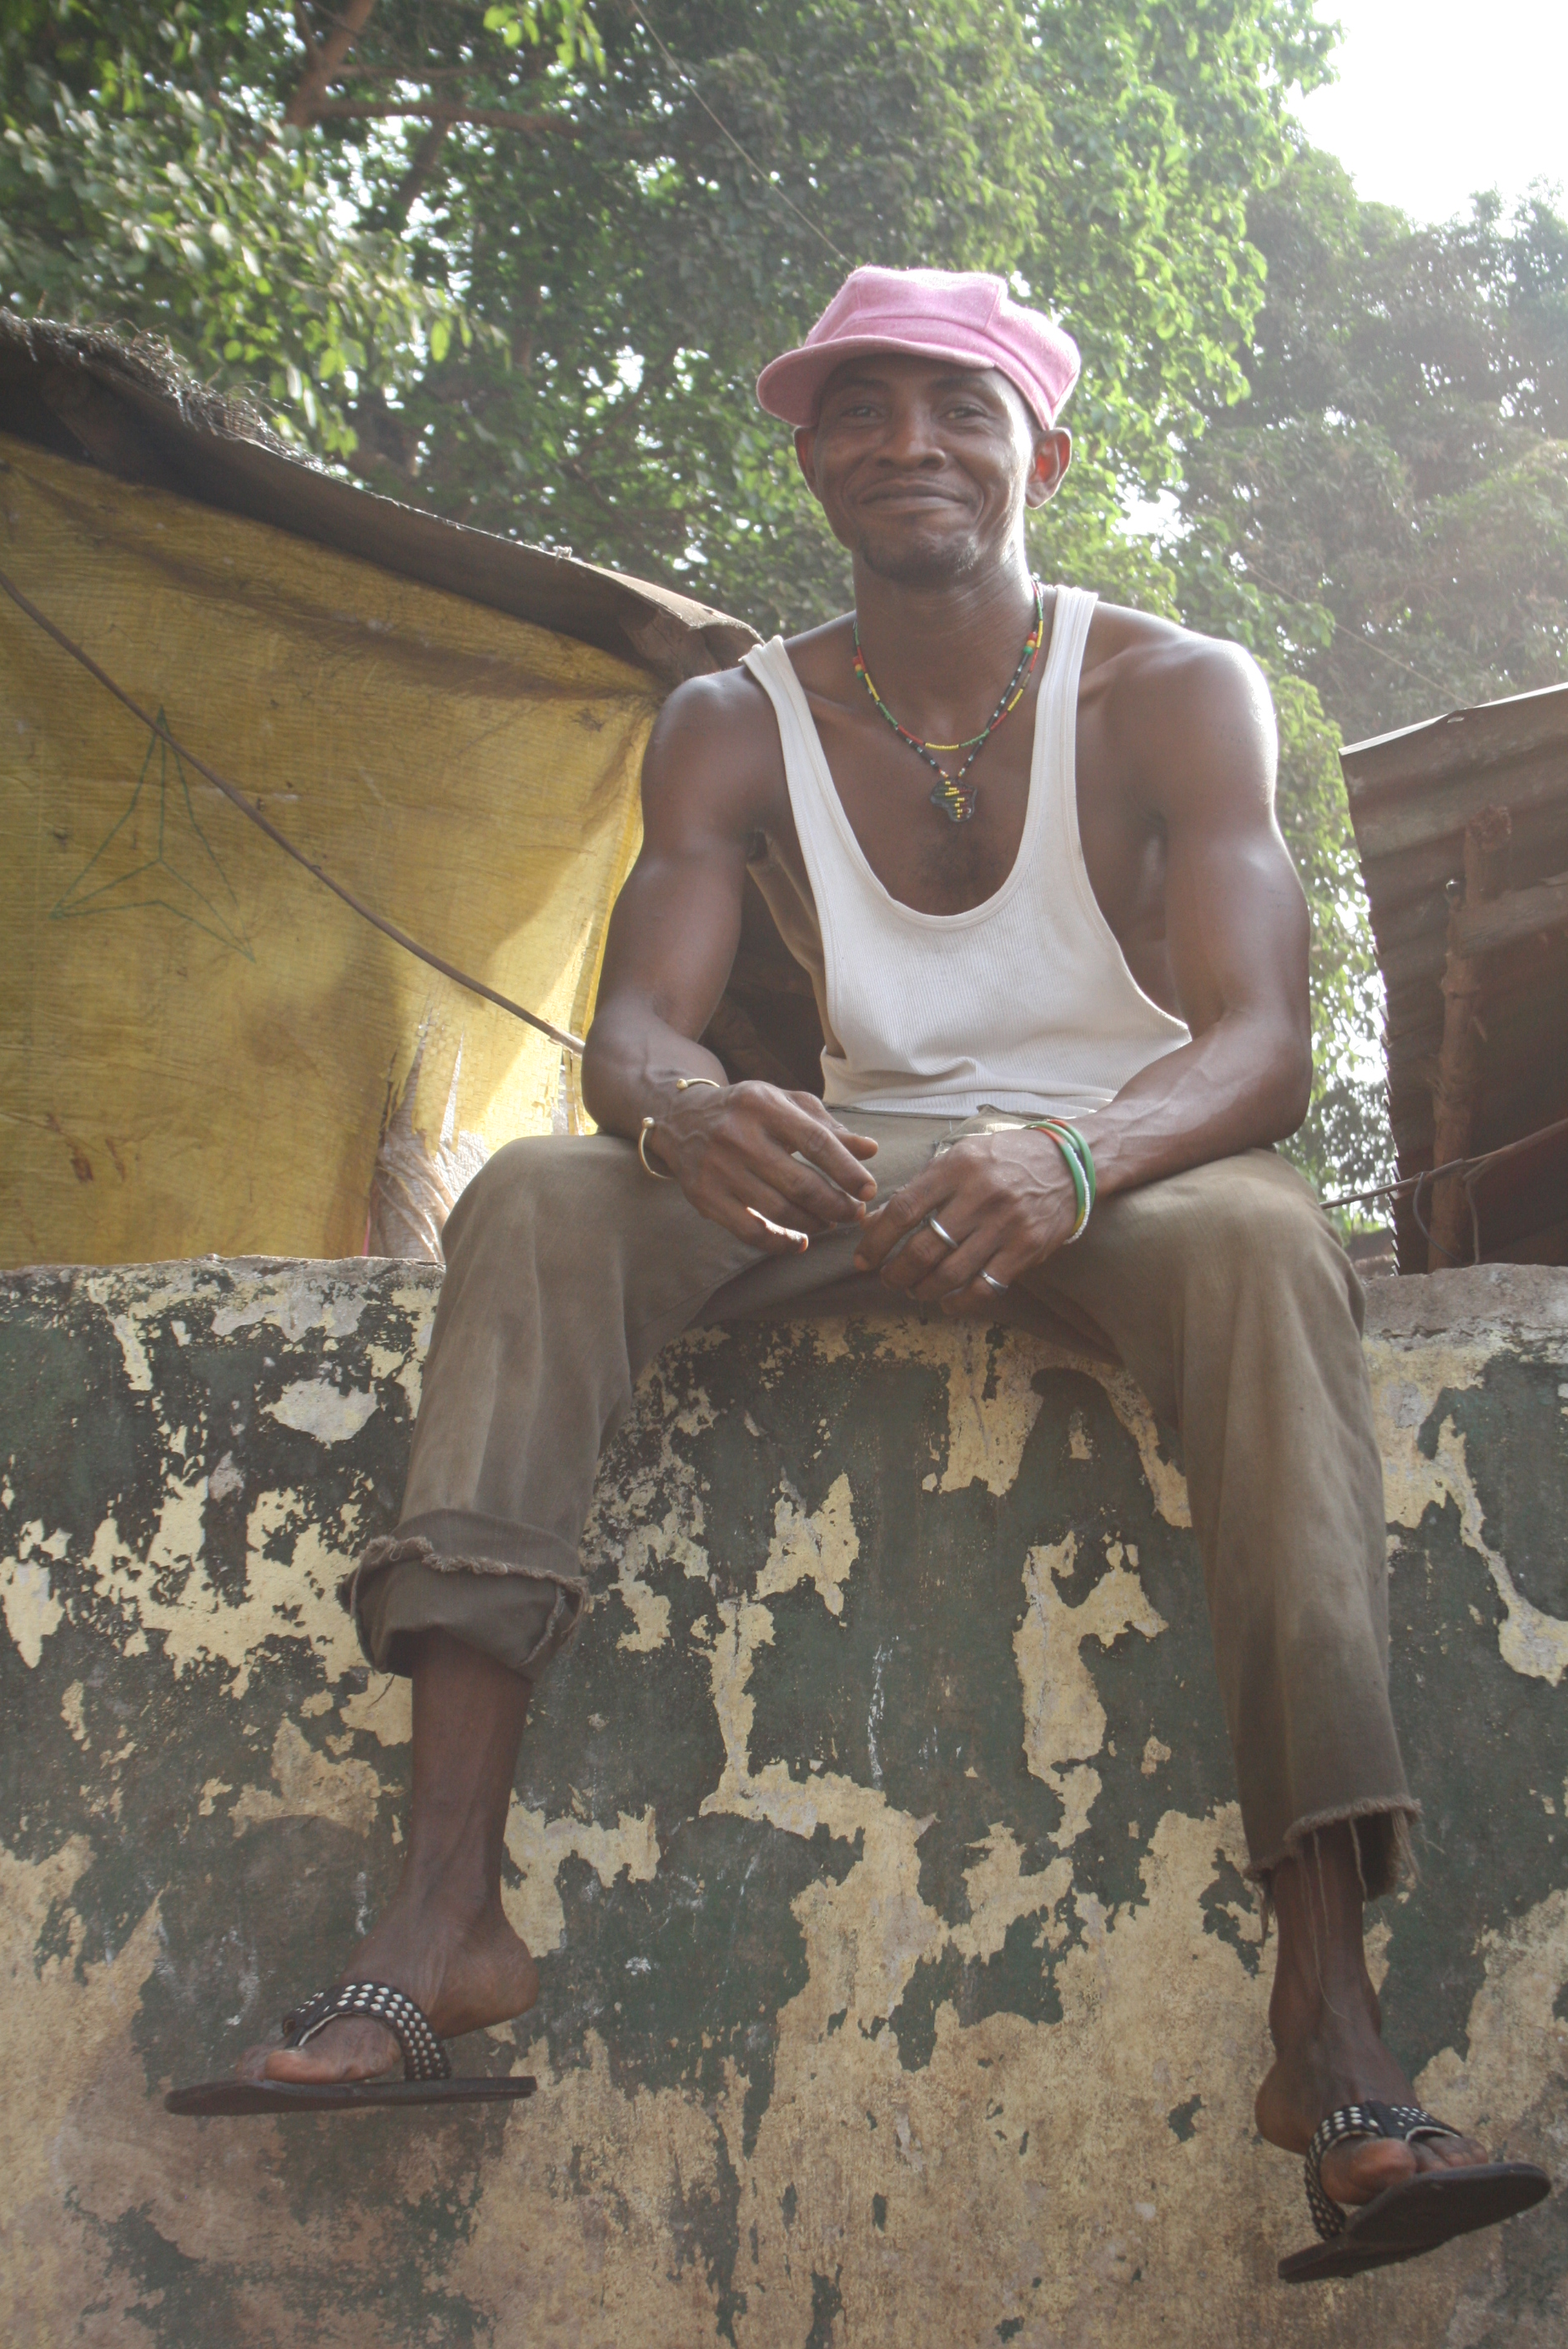 A member of the West Sie Boys, who set up and run a public shower in Kroo Bay slum, Freetown